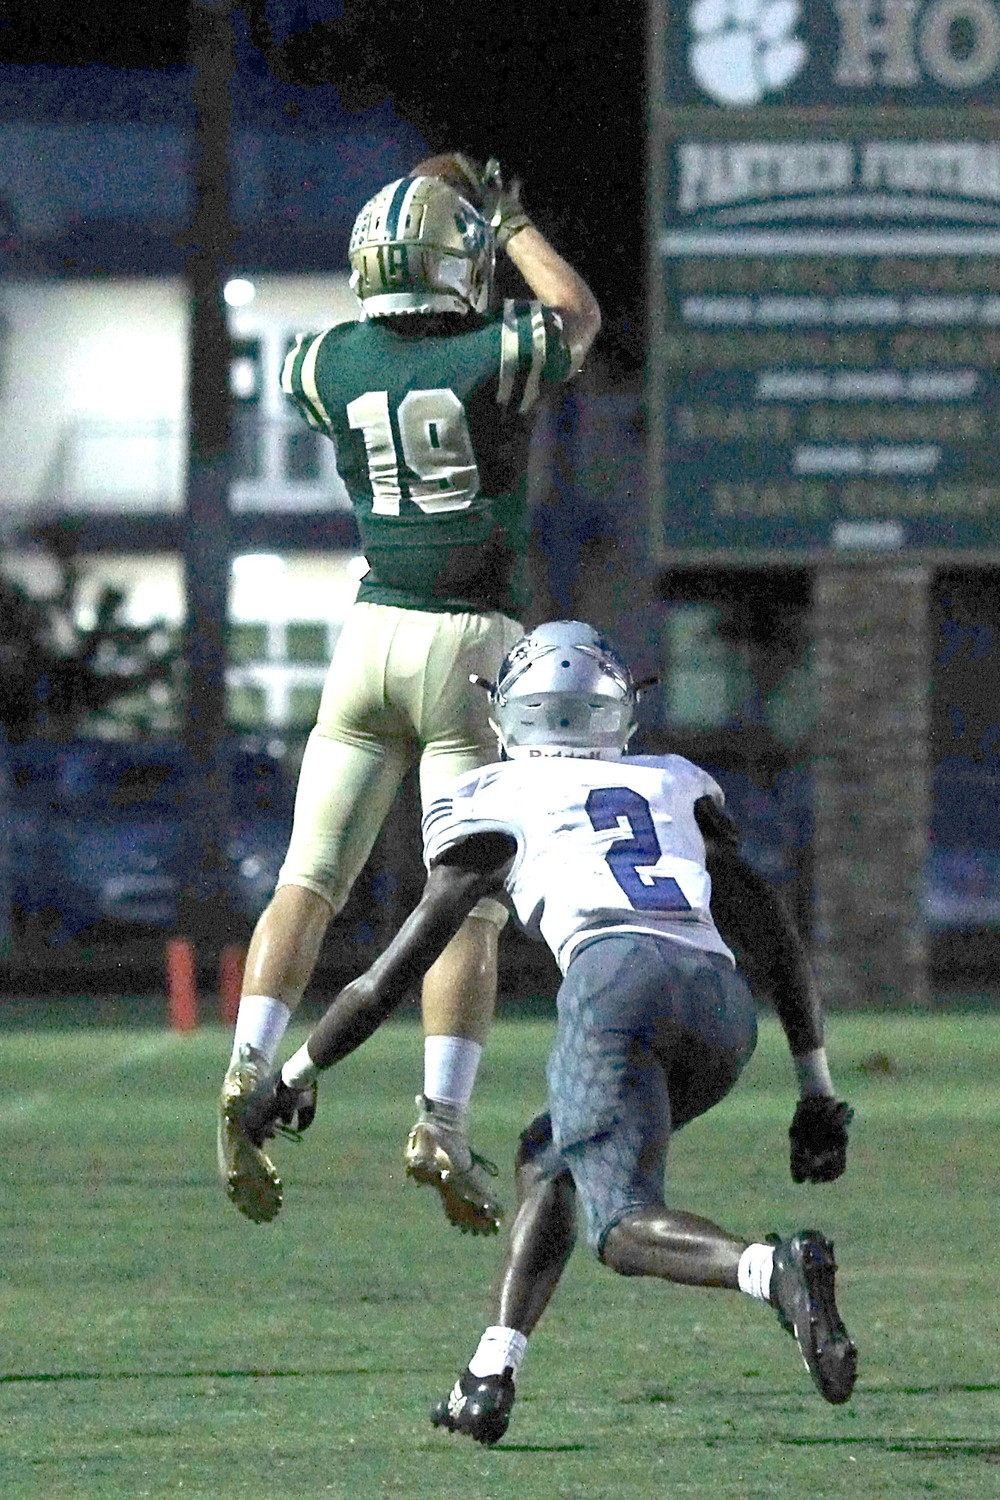 Nease wide receiver Nicholas Bunkosky makes a catch for the Panthers in the team's 6-5 loss to Matanzas on Sept. 28.